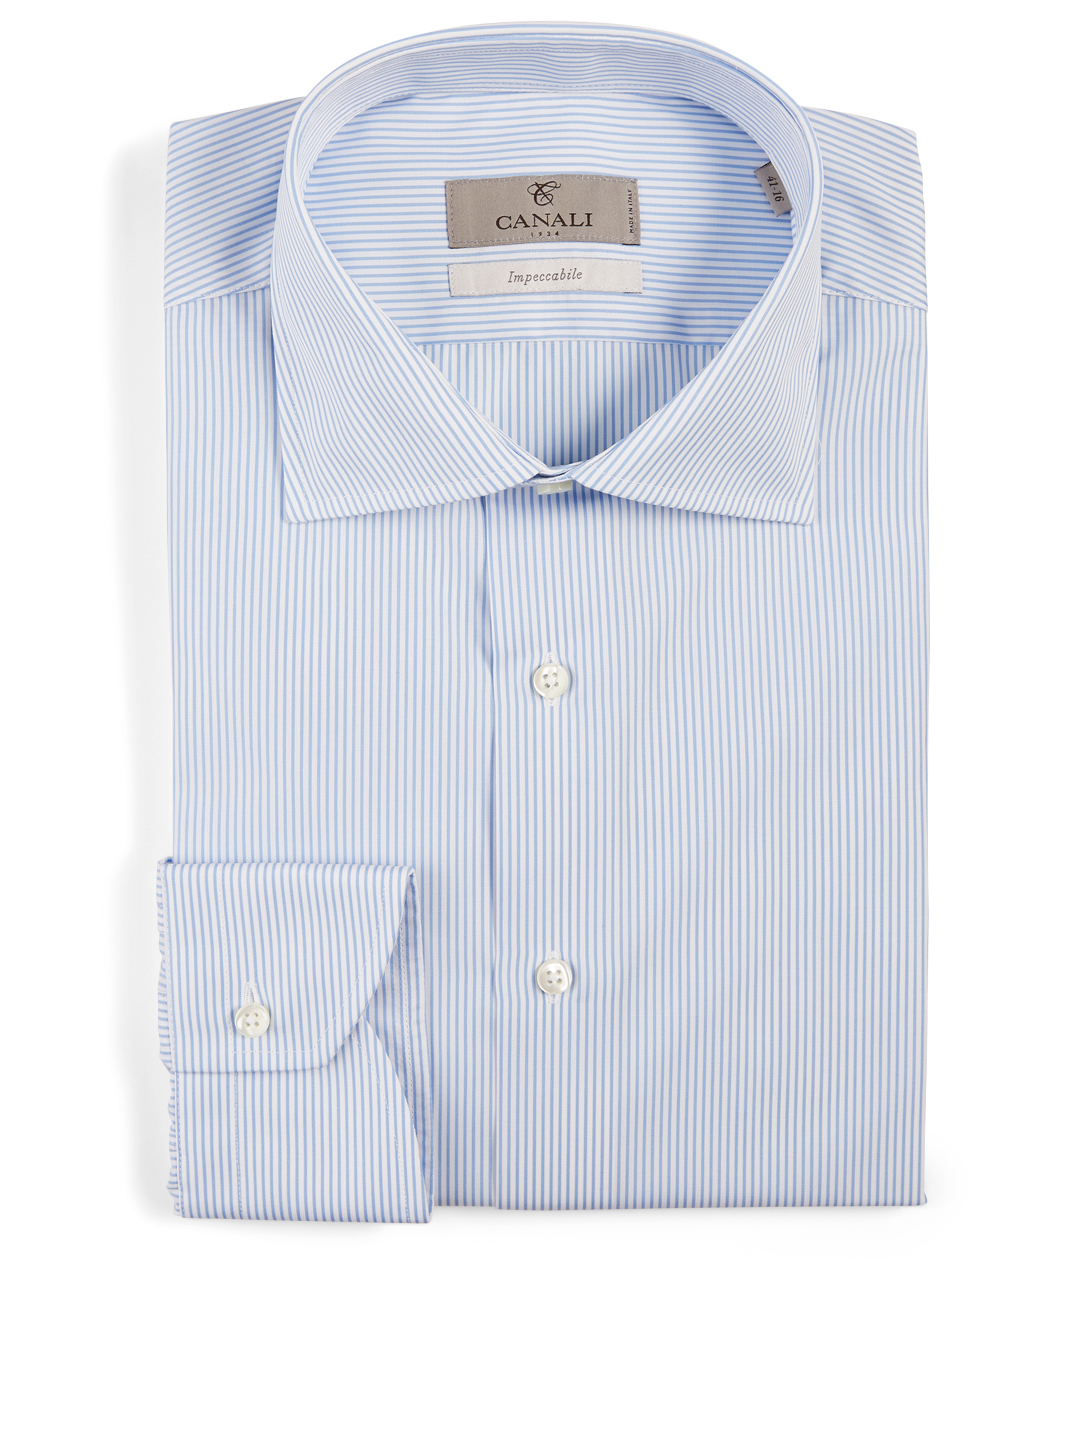 CANALI Impeccable Cotton Shirt In Striped Print Men's Blue